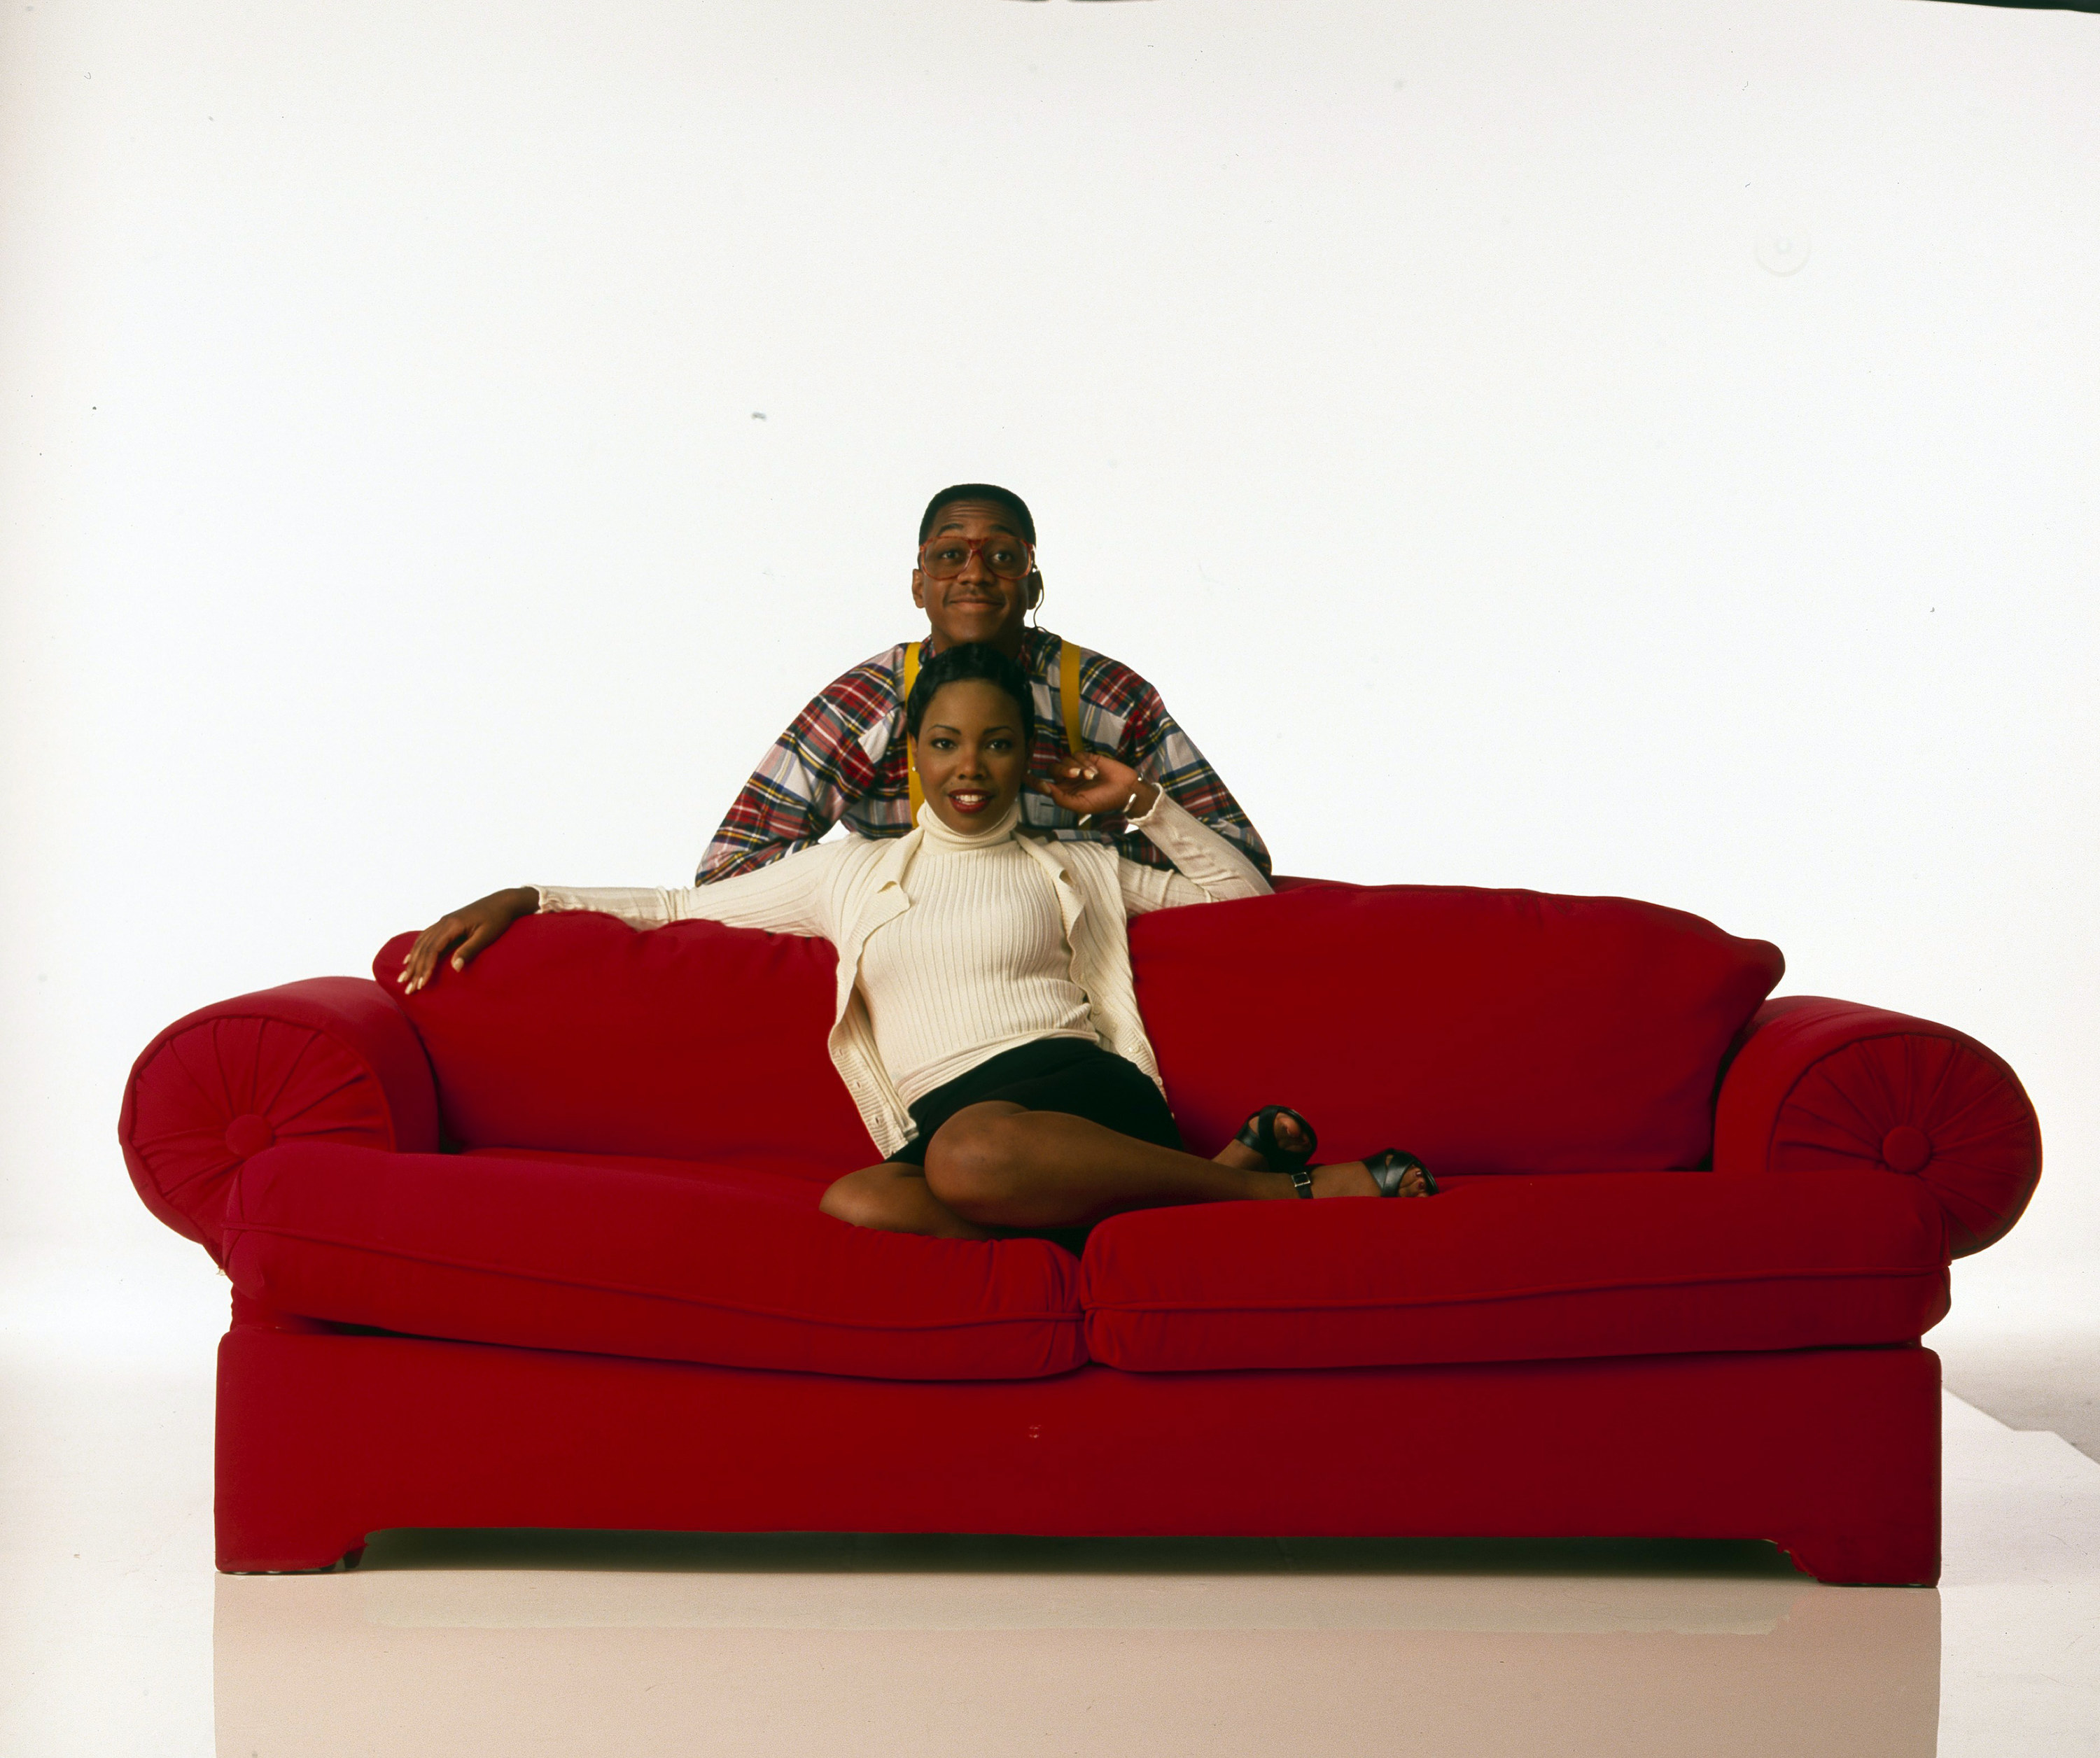 A publicity photo of Laura and Steve from Family Matters